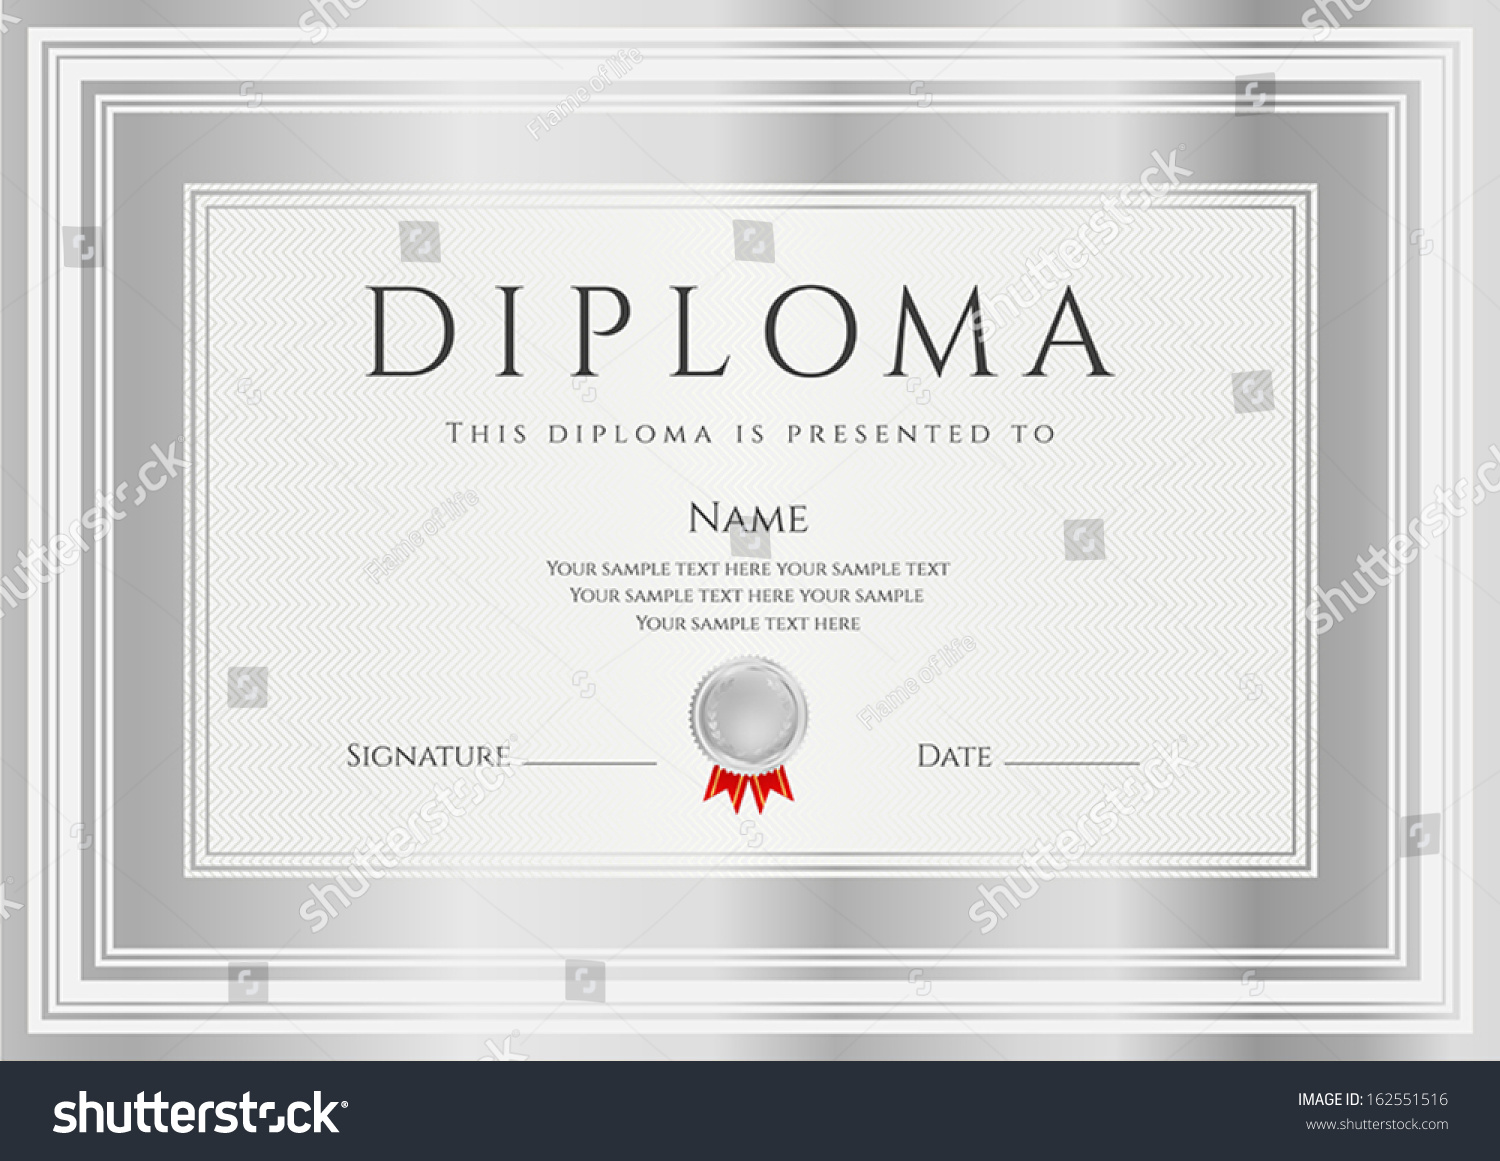 Diploma Certificate Of Completion Design Template